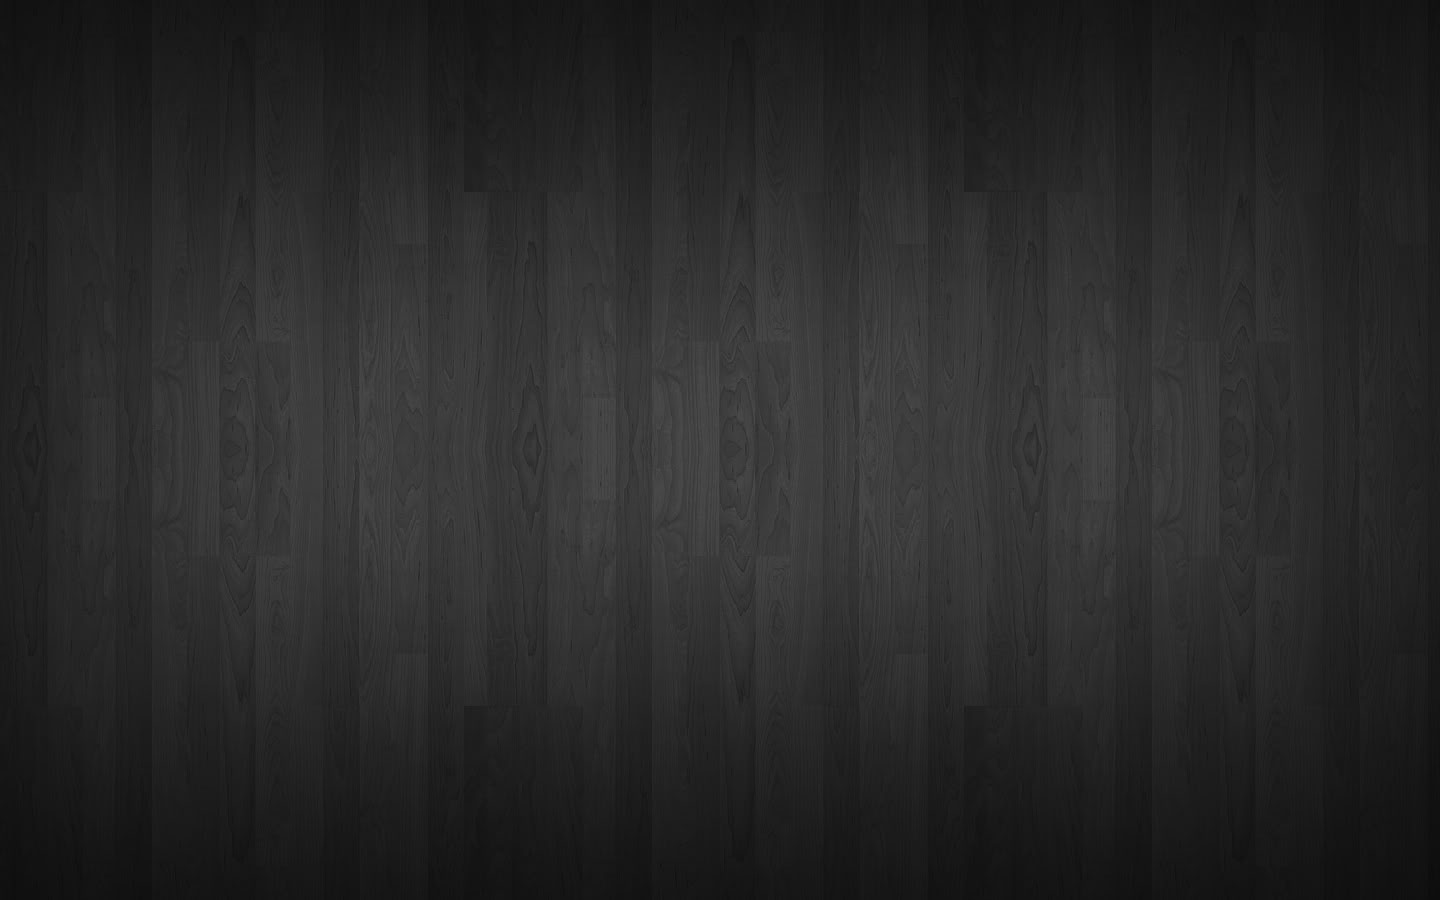 HardwoodFloorBackground-BW.jpg - CrossFit Code Red - CrossFit Gym in Hillsboro, OR